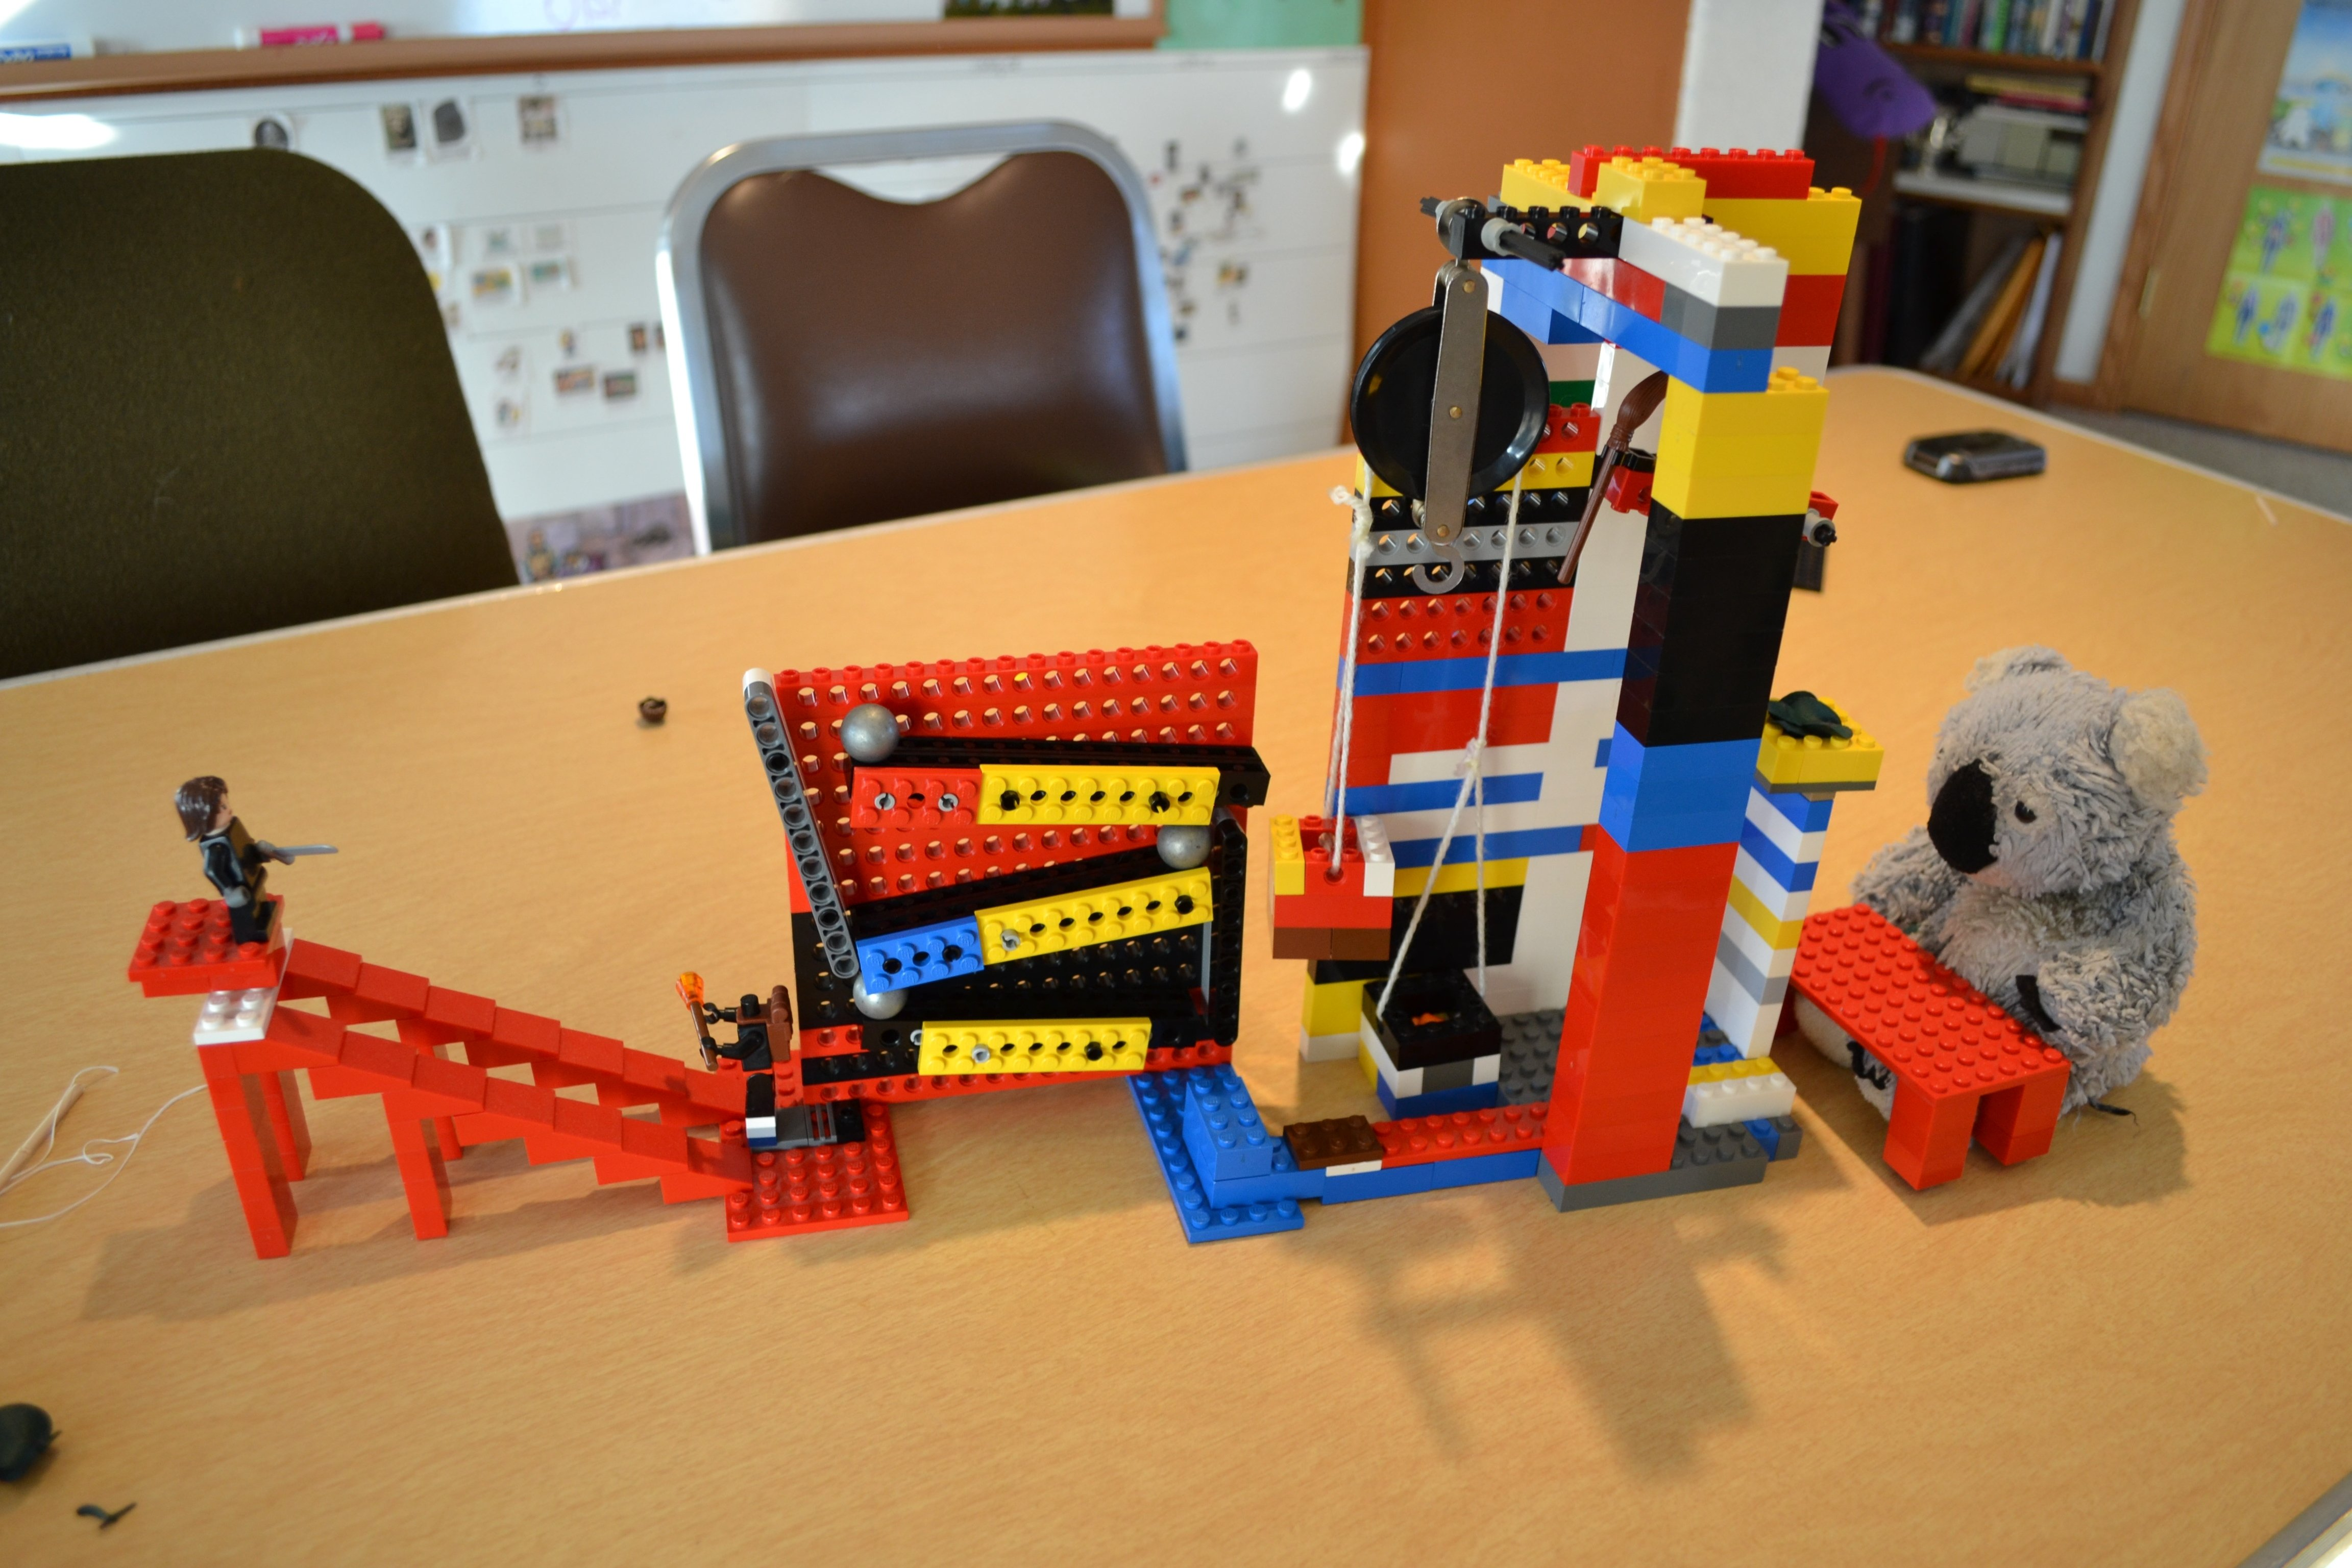 10 Most Recommended Ideas For Rube Goldberg Project the rube goldberg conclusion if its broken toss it then try 1 2021